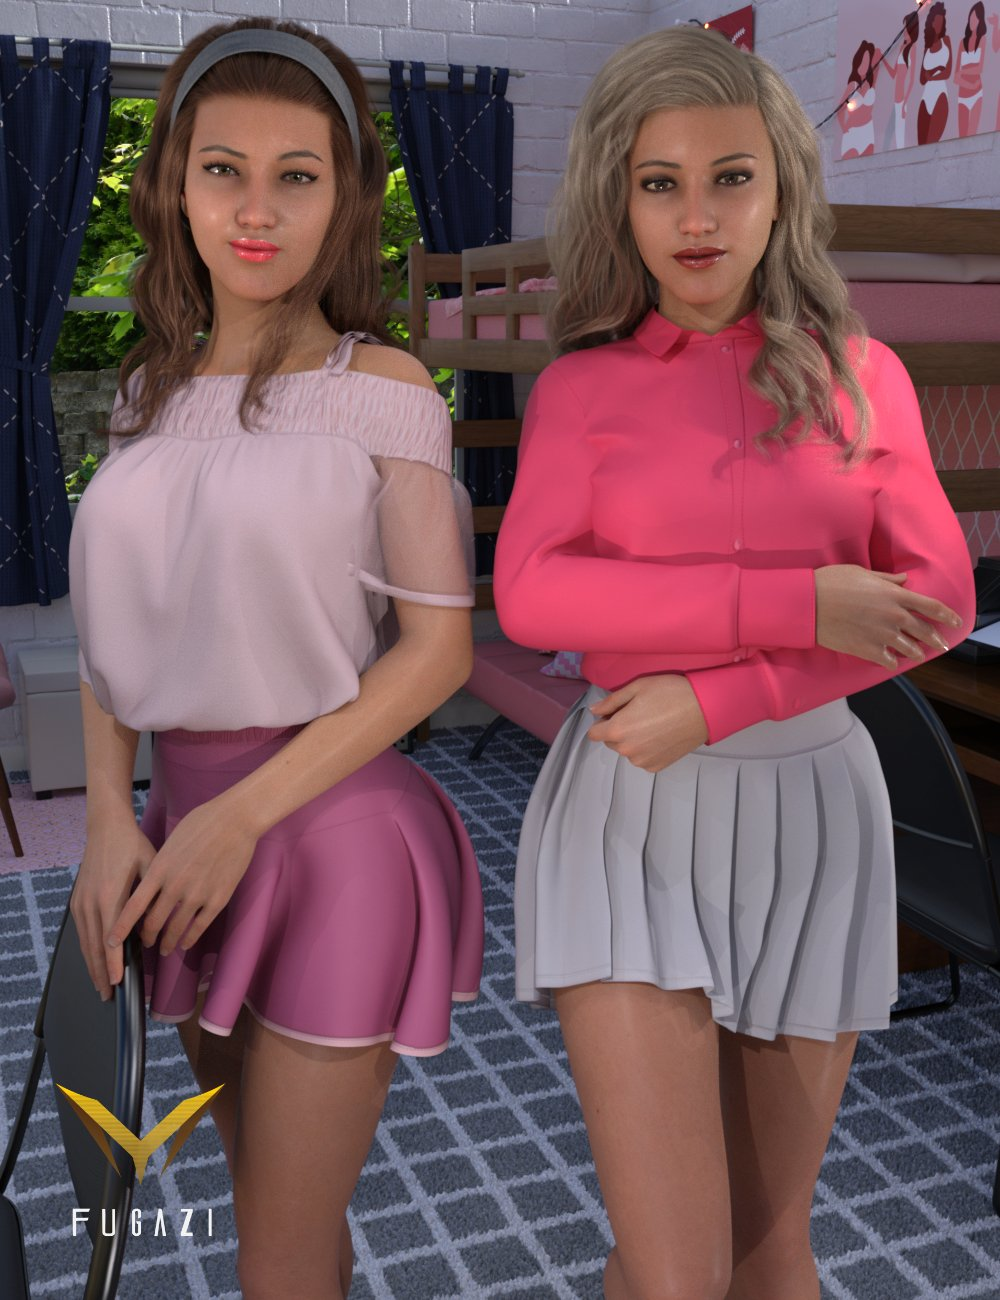 FG College Dormitory Poses by: IronmanFugazi1968, 3D Models by Daz 3D